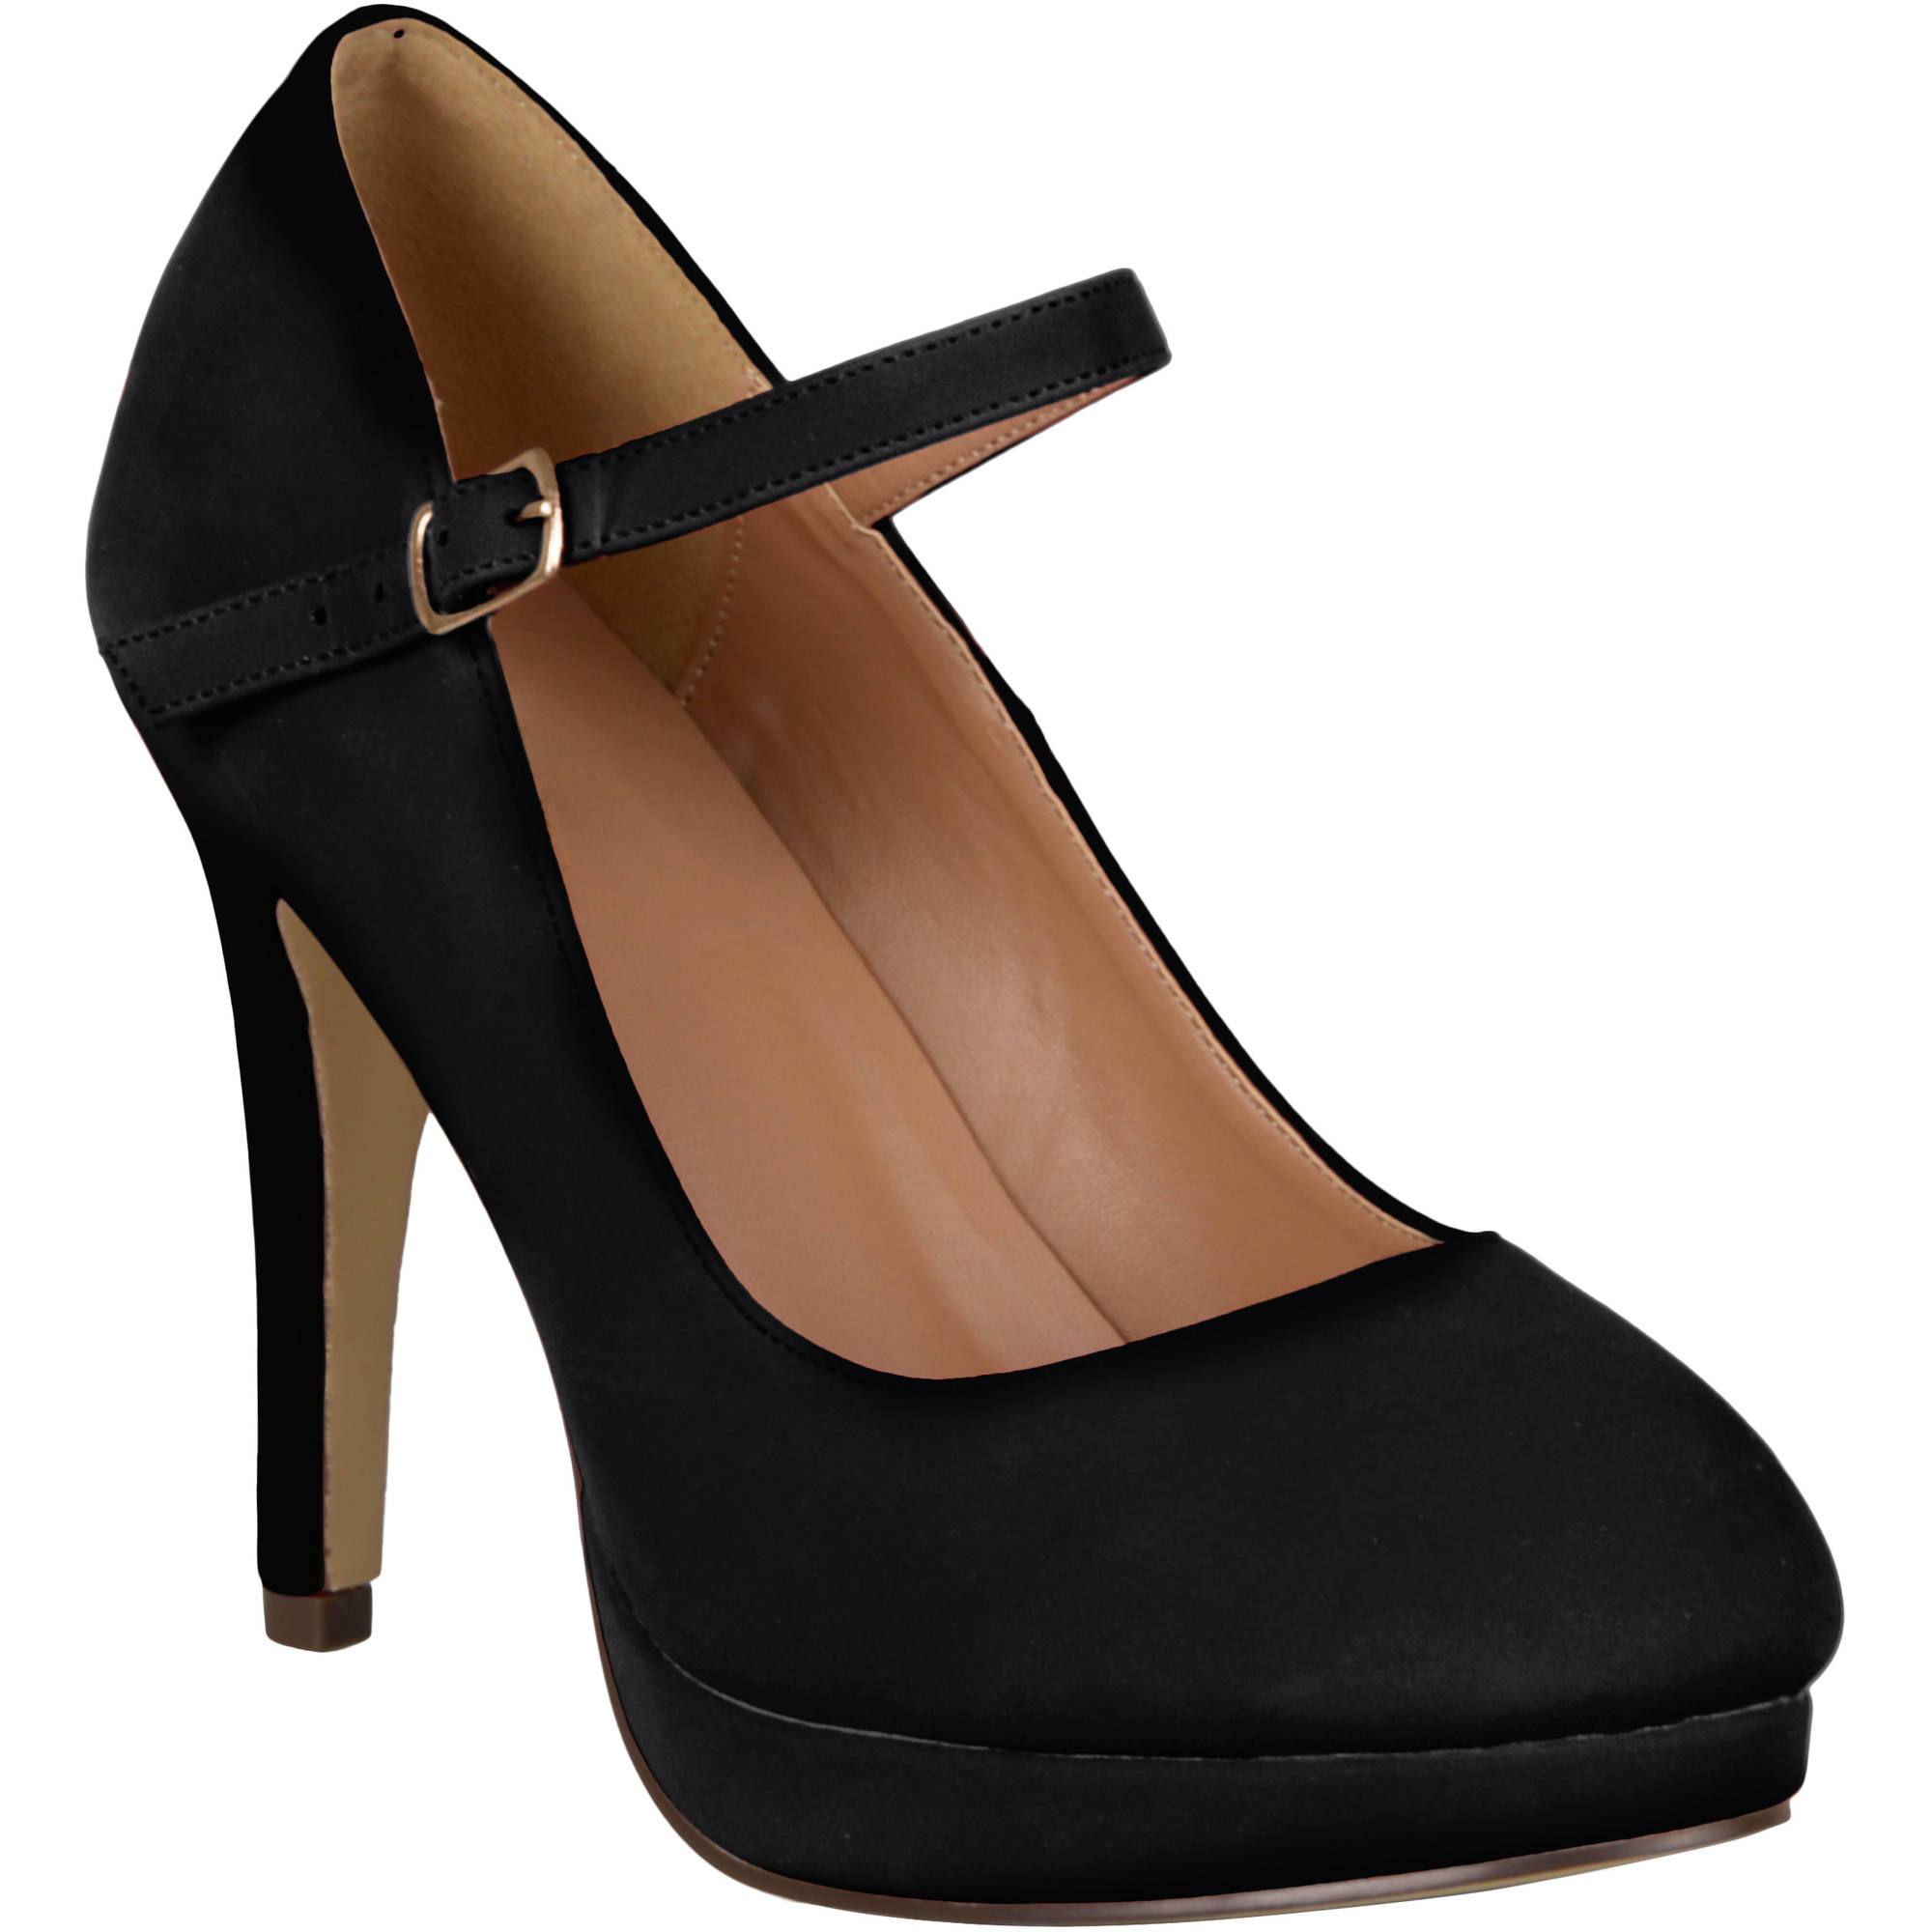 Brinley Co. Womens Wide Width Platform Mary Janes